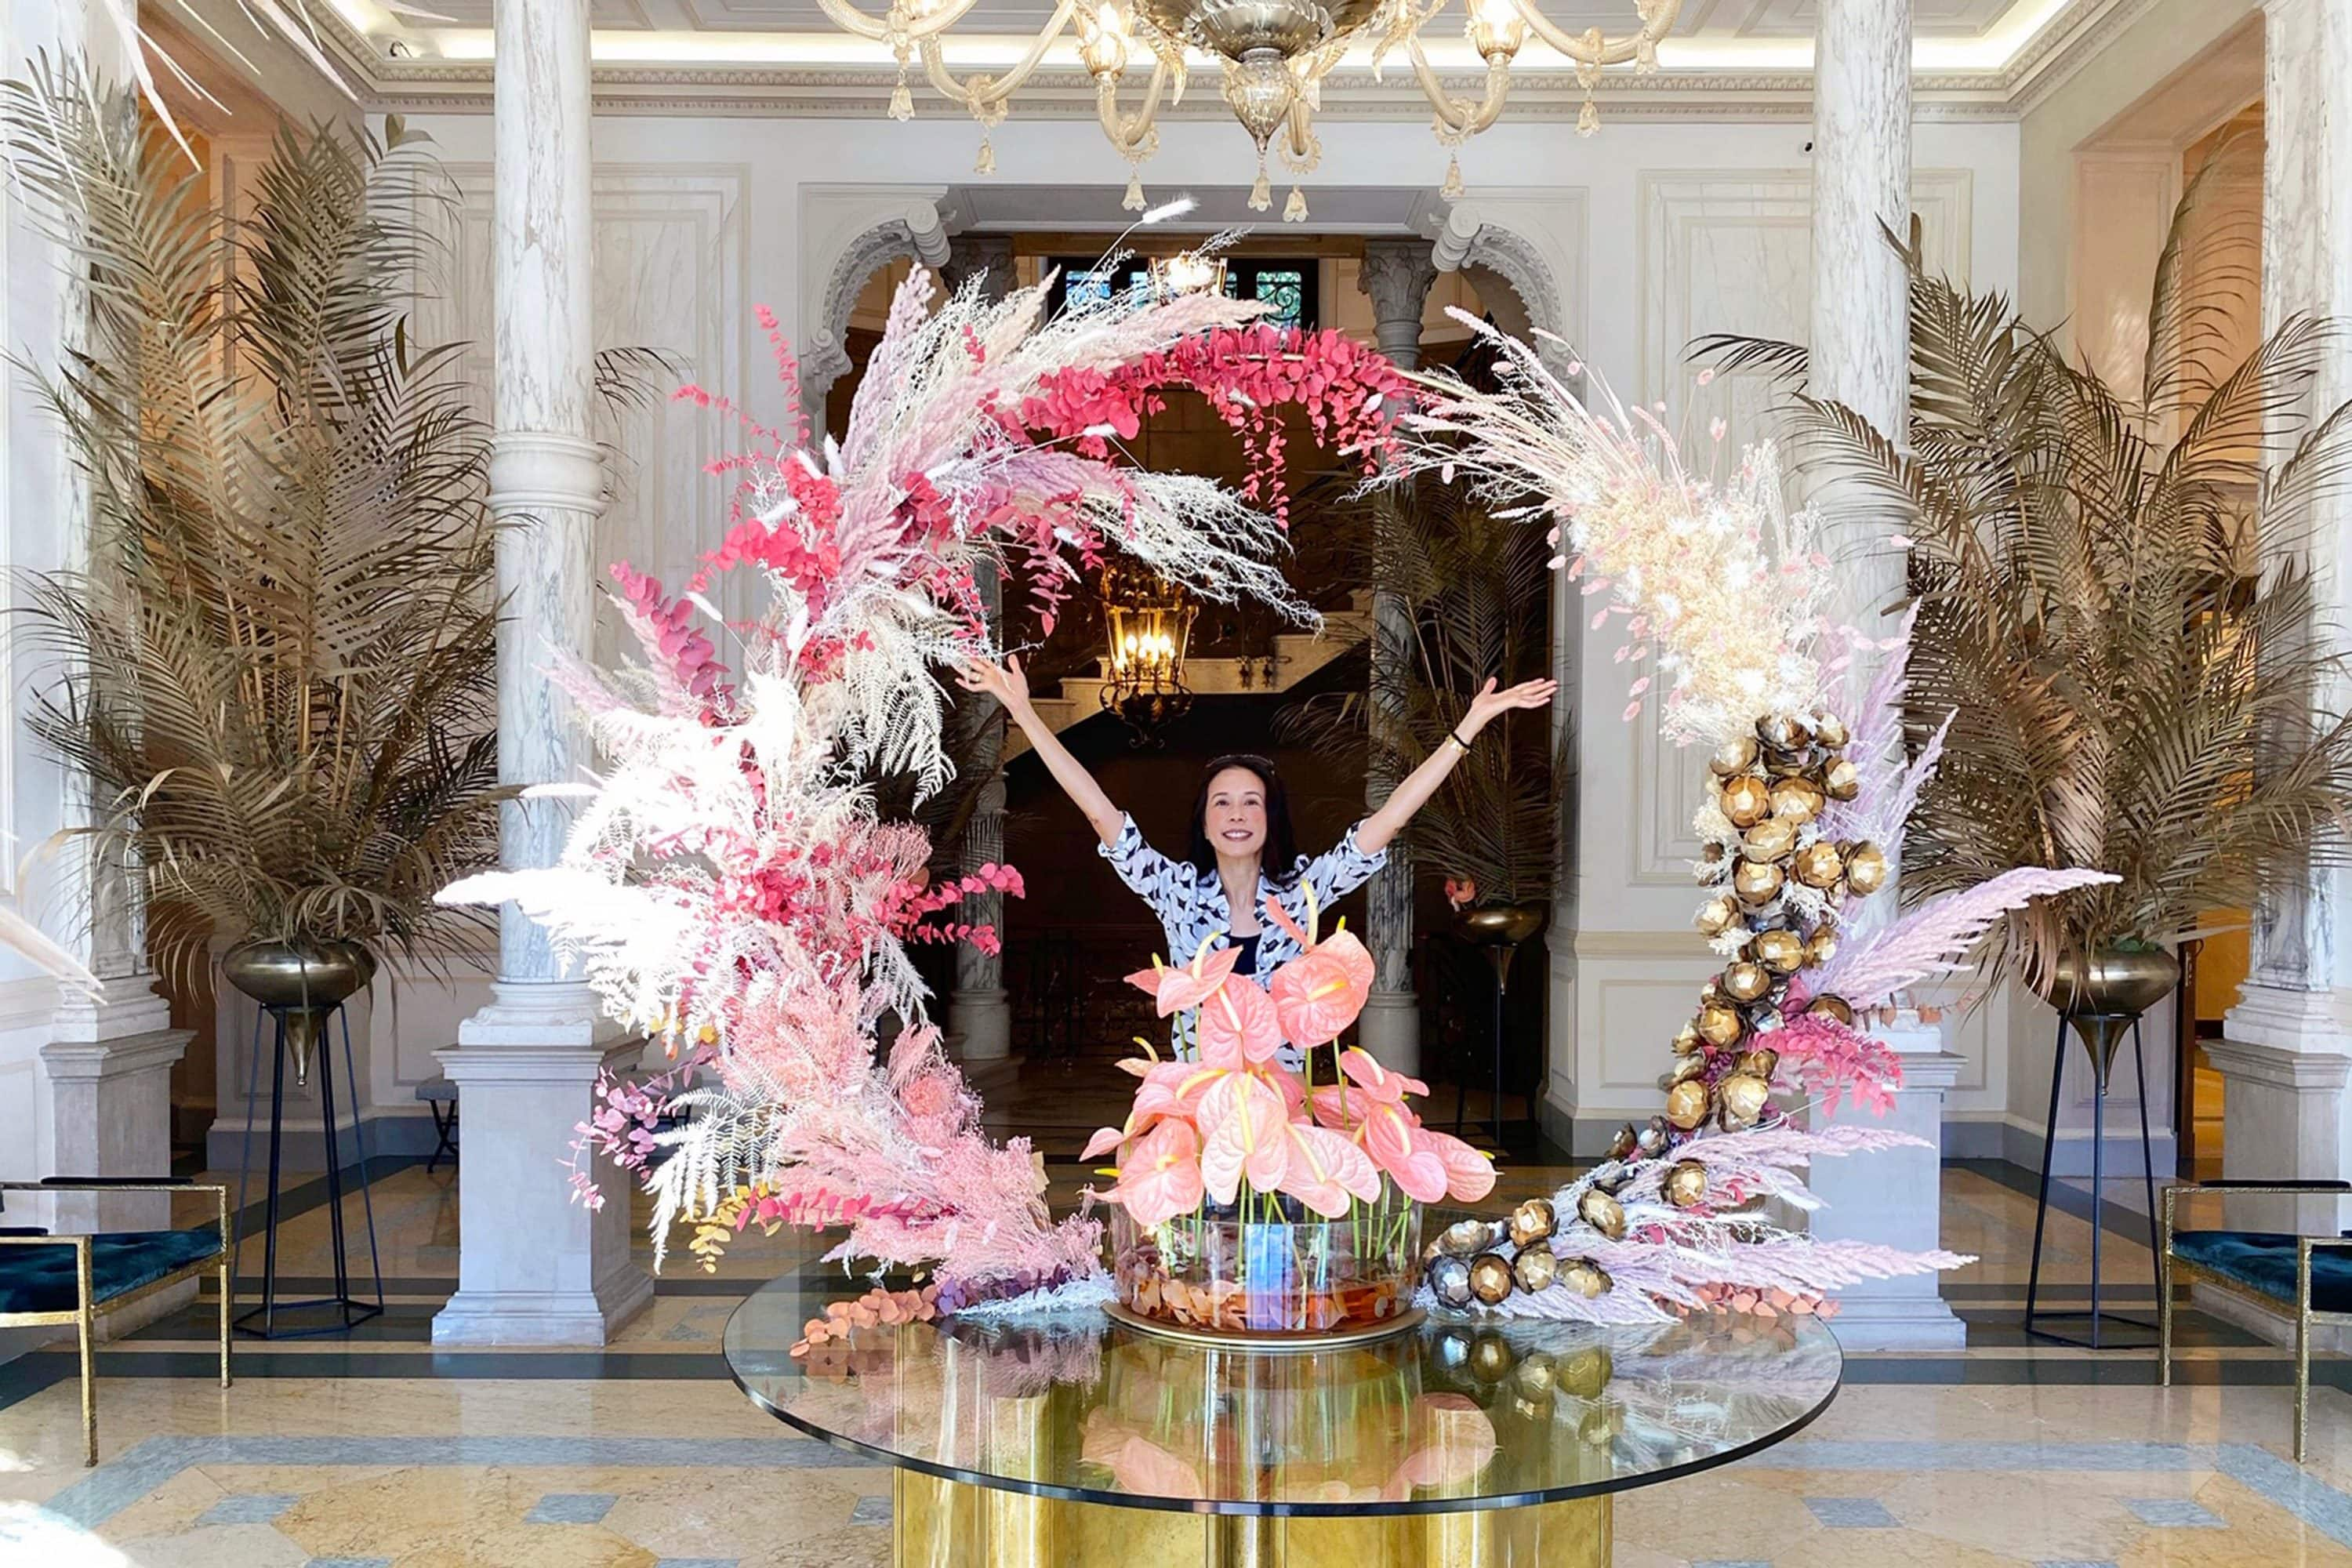 Karen Mok poses in hotel lobby surrounded by flowers